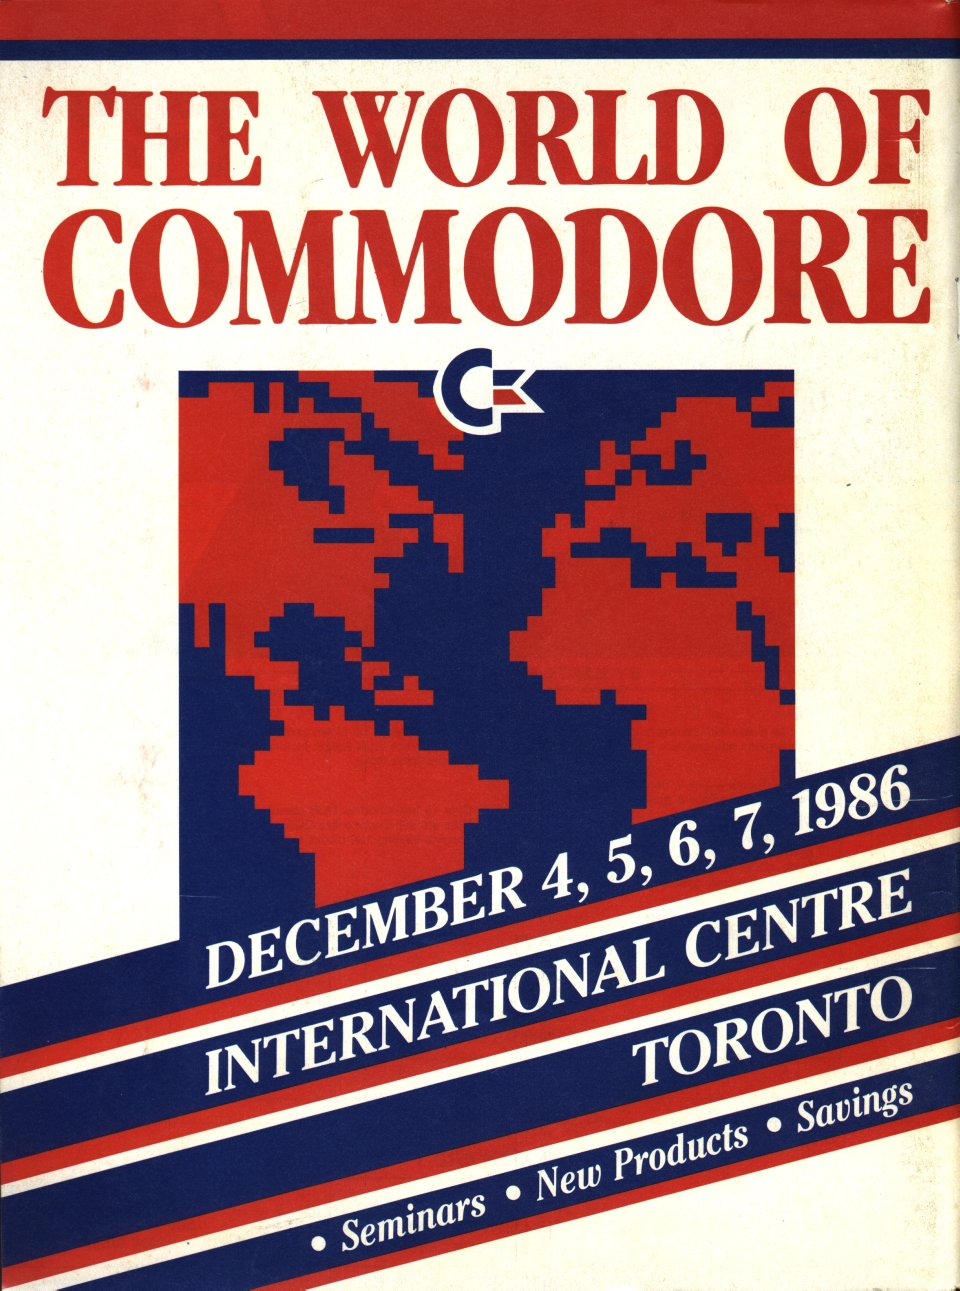 [Advertisement: The World of Commodore, December 4-7, 1986, International Centre, Toronto]